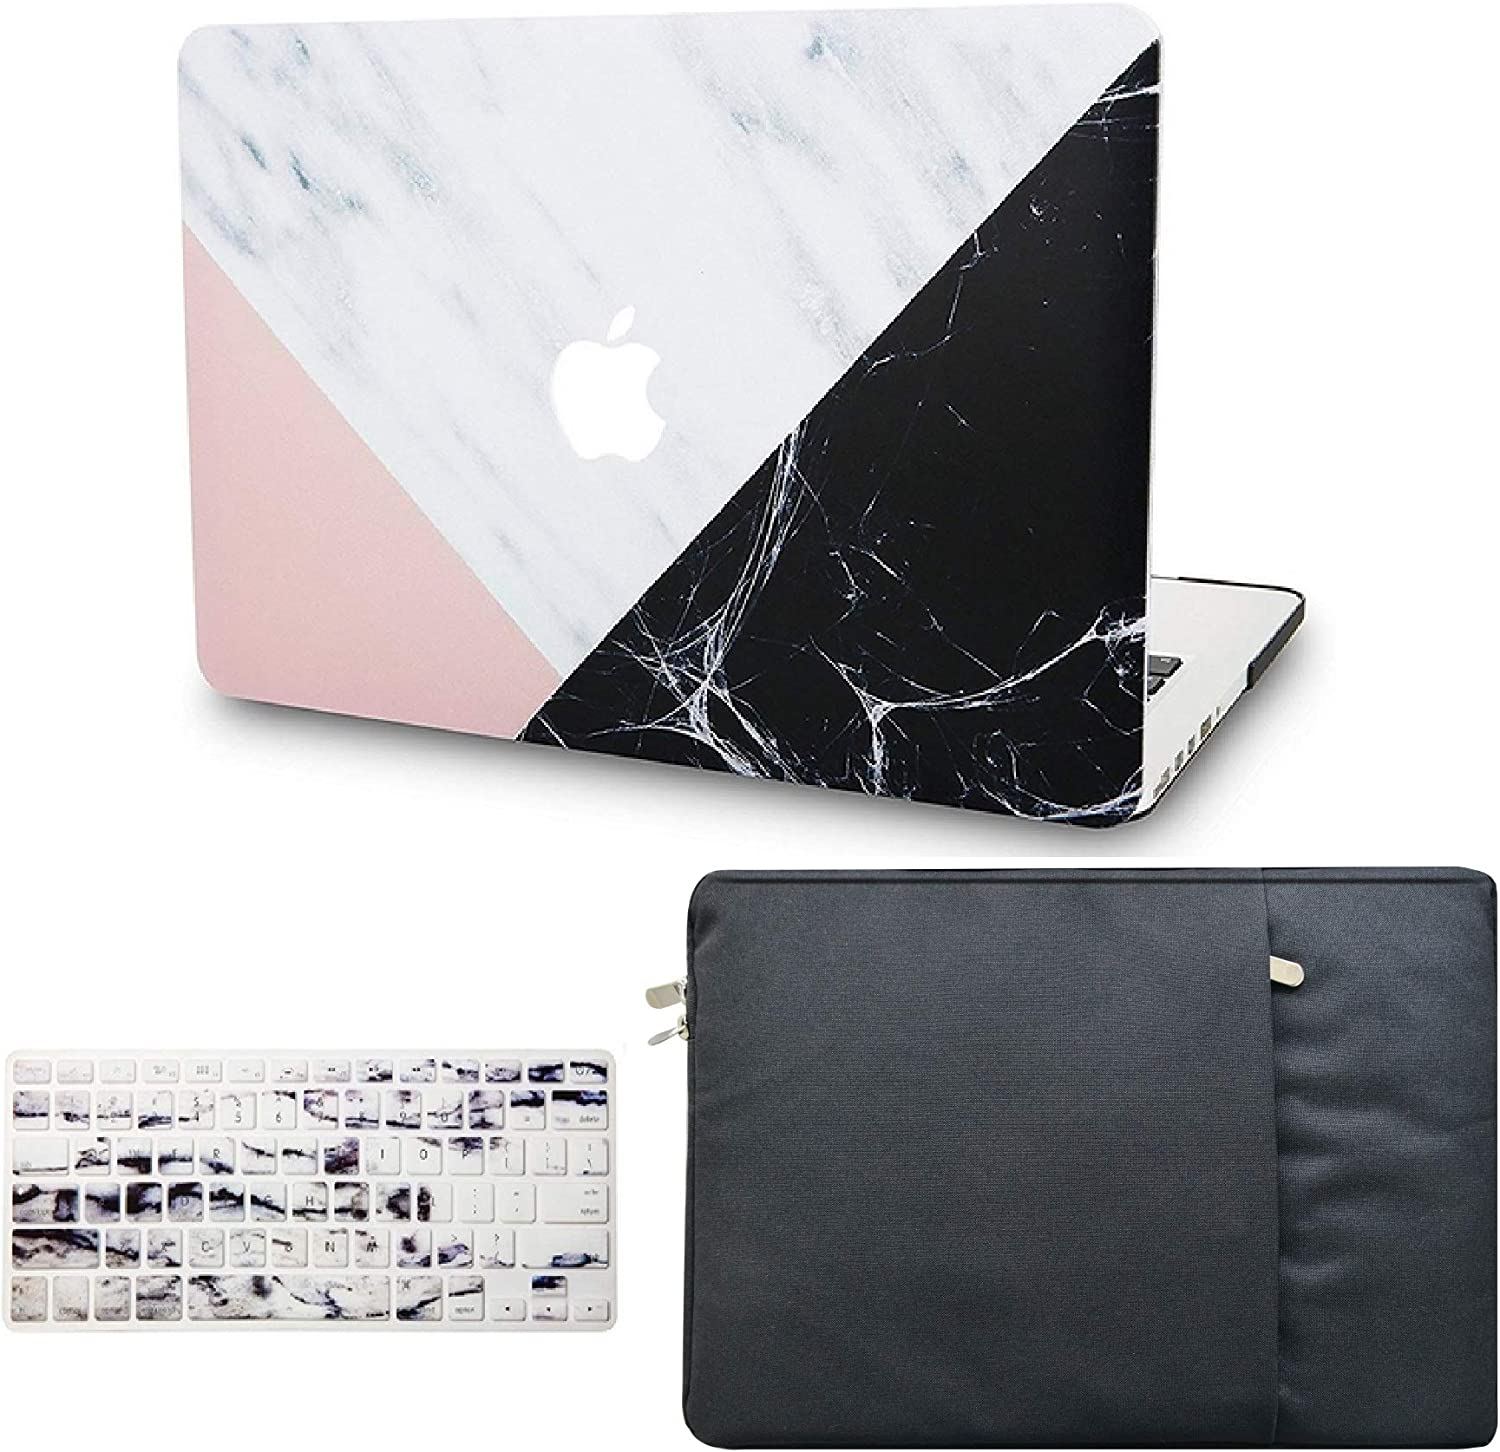 """KECC Laptop Case for MacBook Pro 15"""" (2019/2018/2017/2016) w/Keyboard Cover + Sleeve Plastic Hard Shell Case A1990/A1707 3 in 1 Bundle (White Marble Pink Black)"""